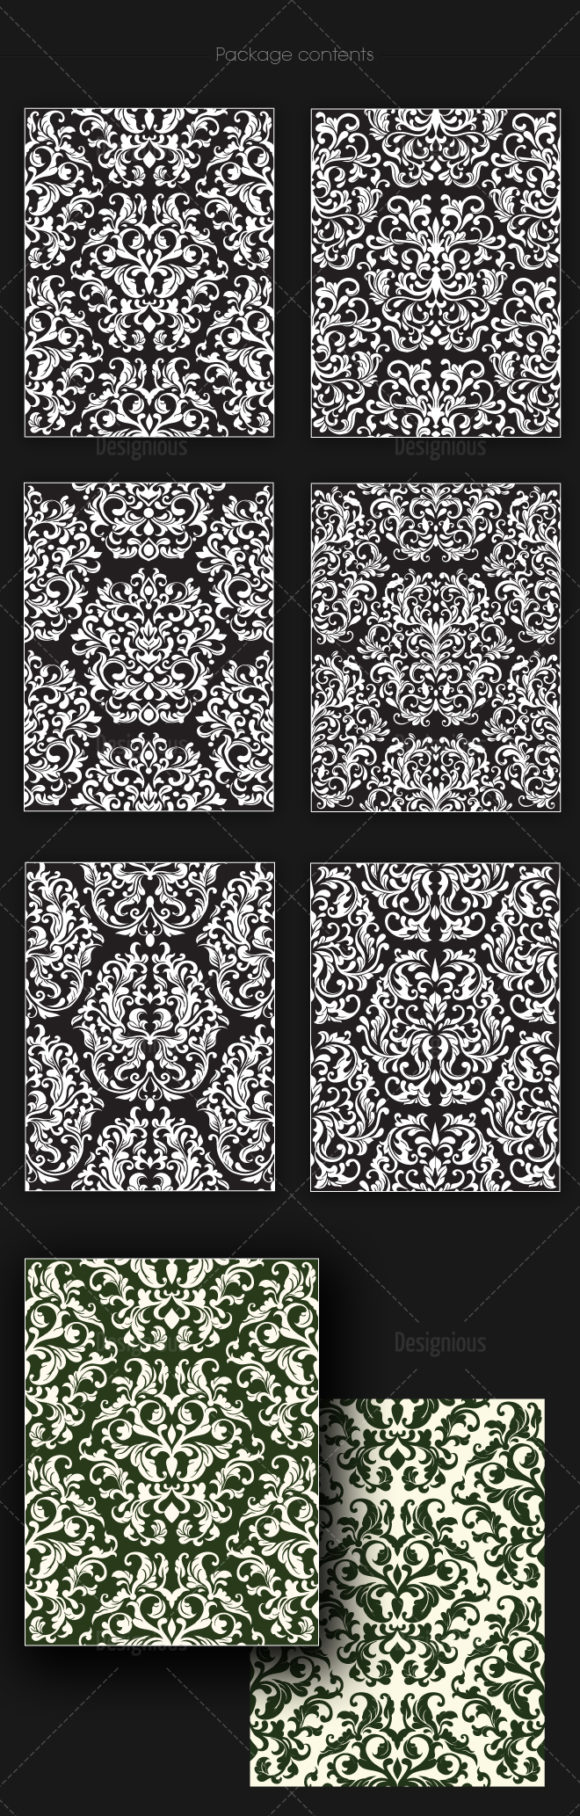 Seamless Patterns Vector Pack 142 6